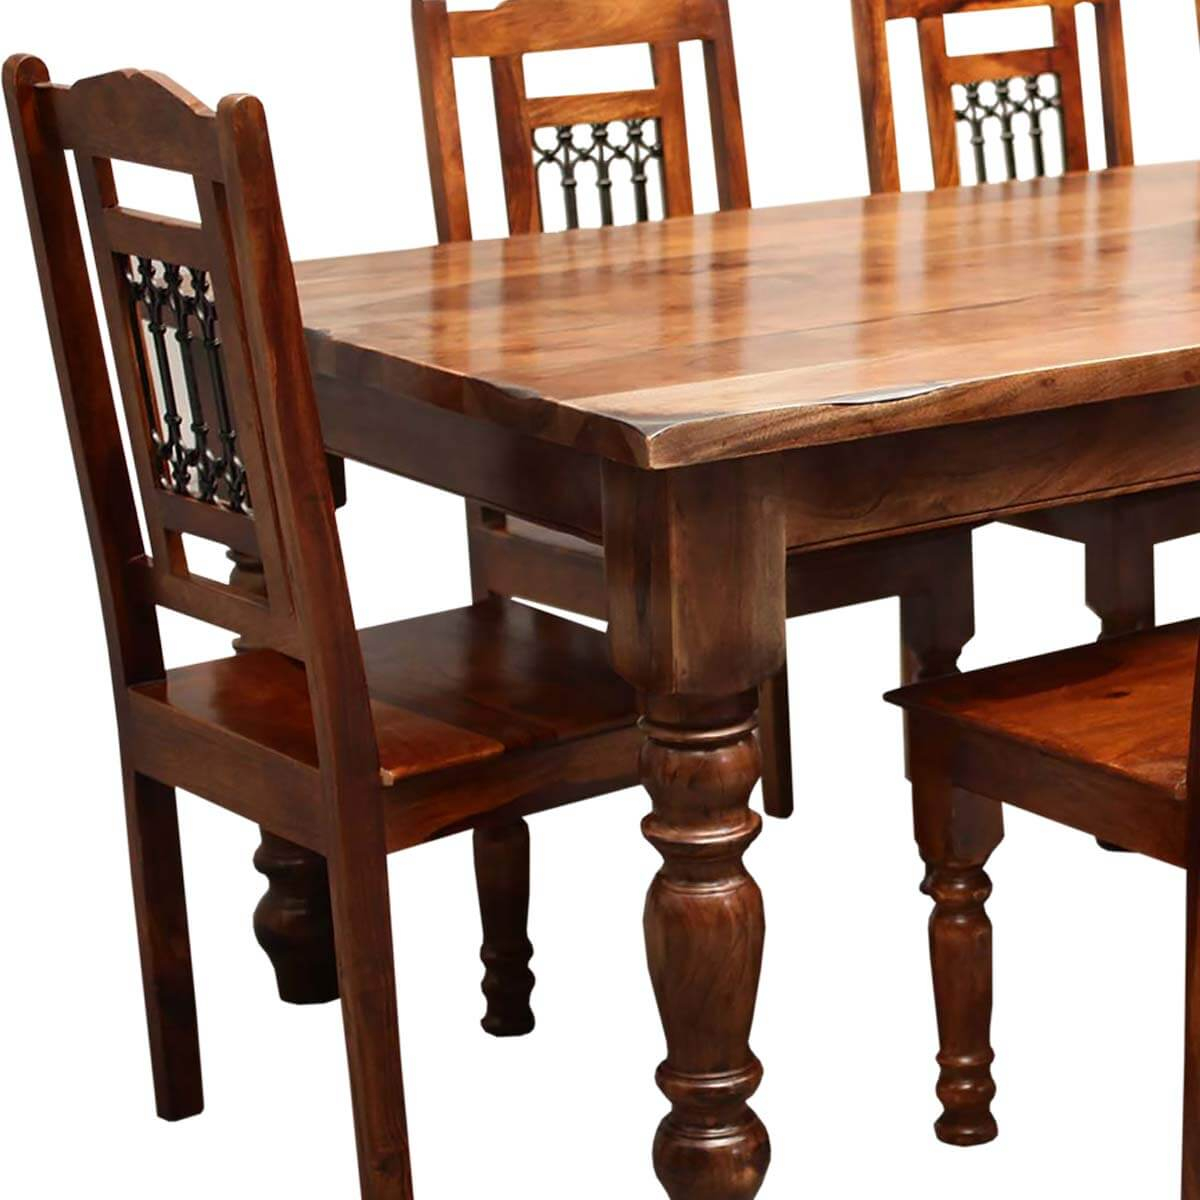 solid wood dining room table and chairs wingback chair covers walmart rustic furniture large 8 set